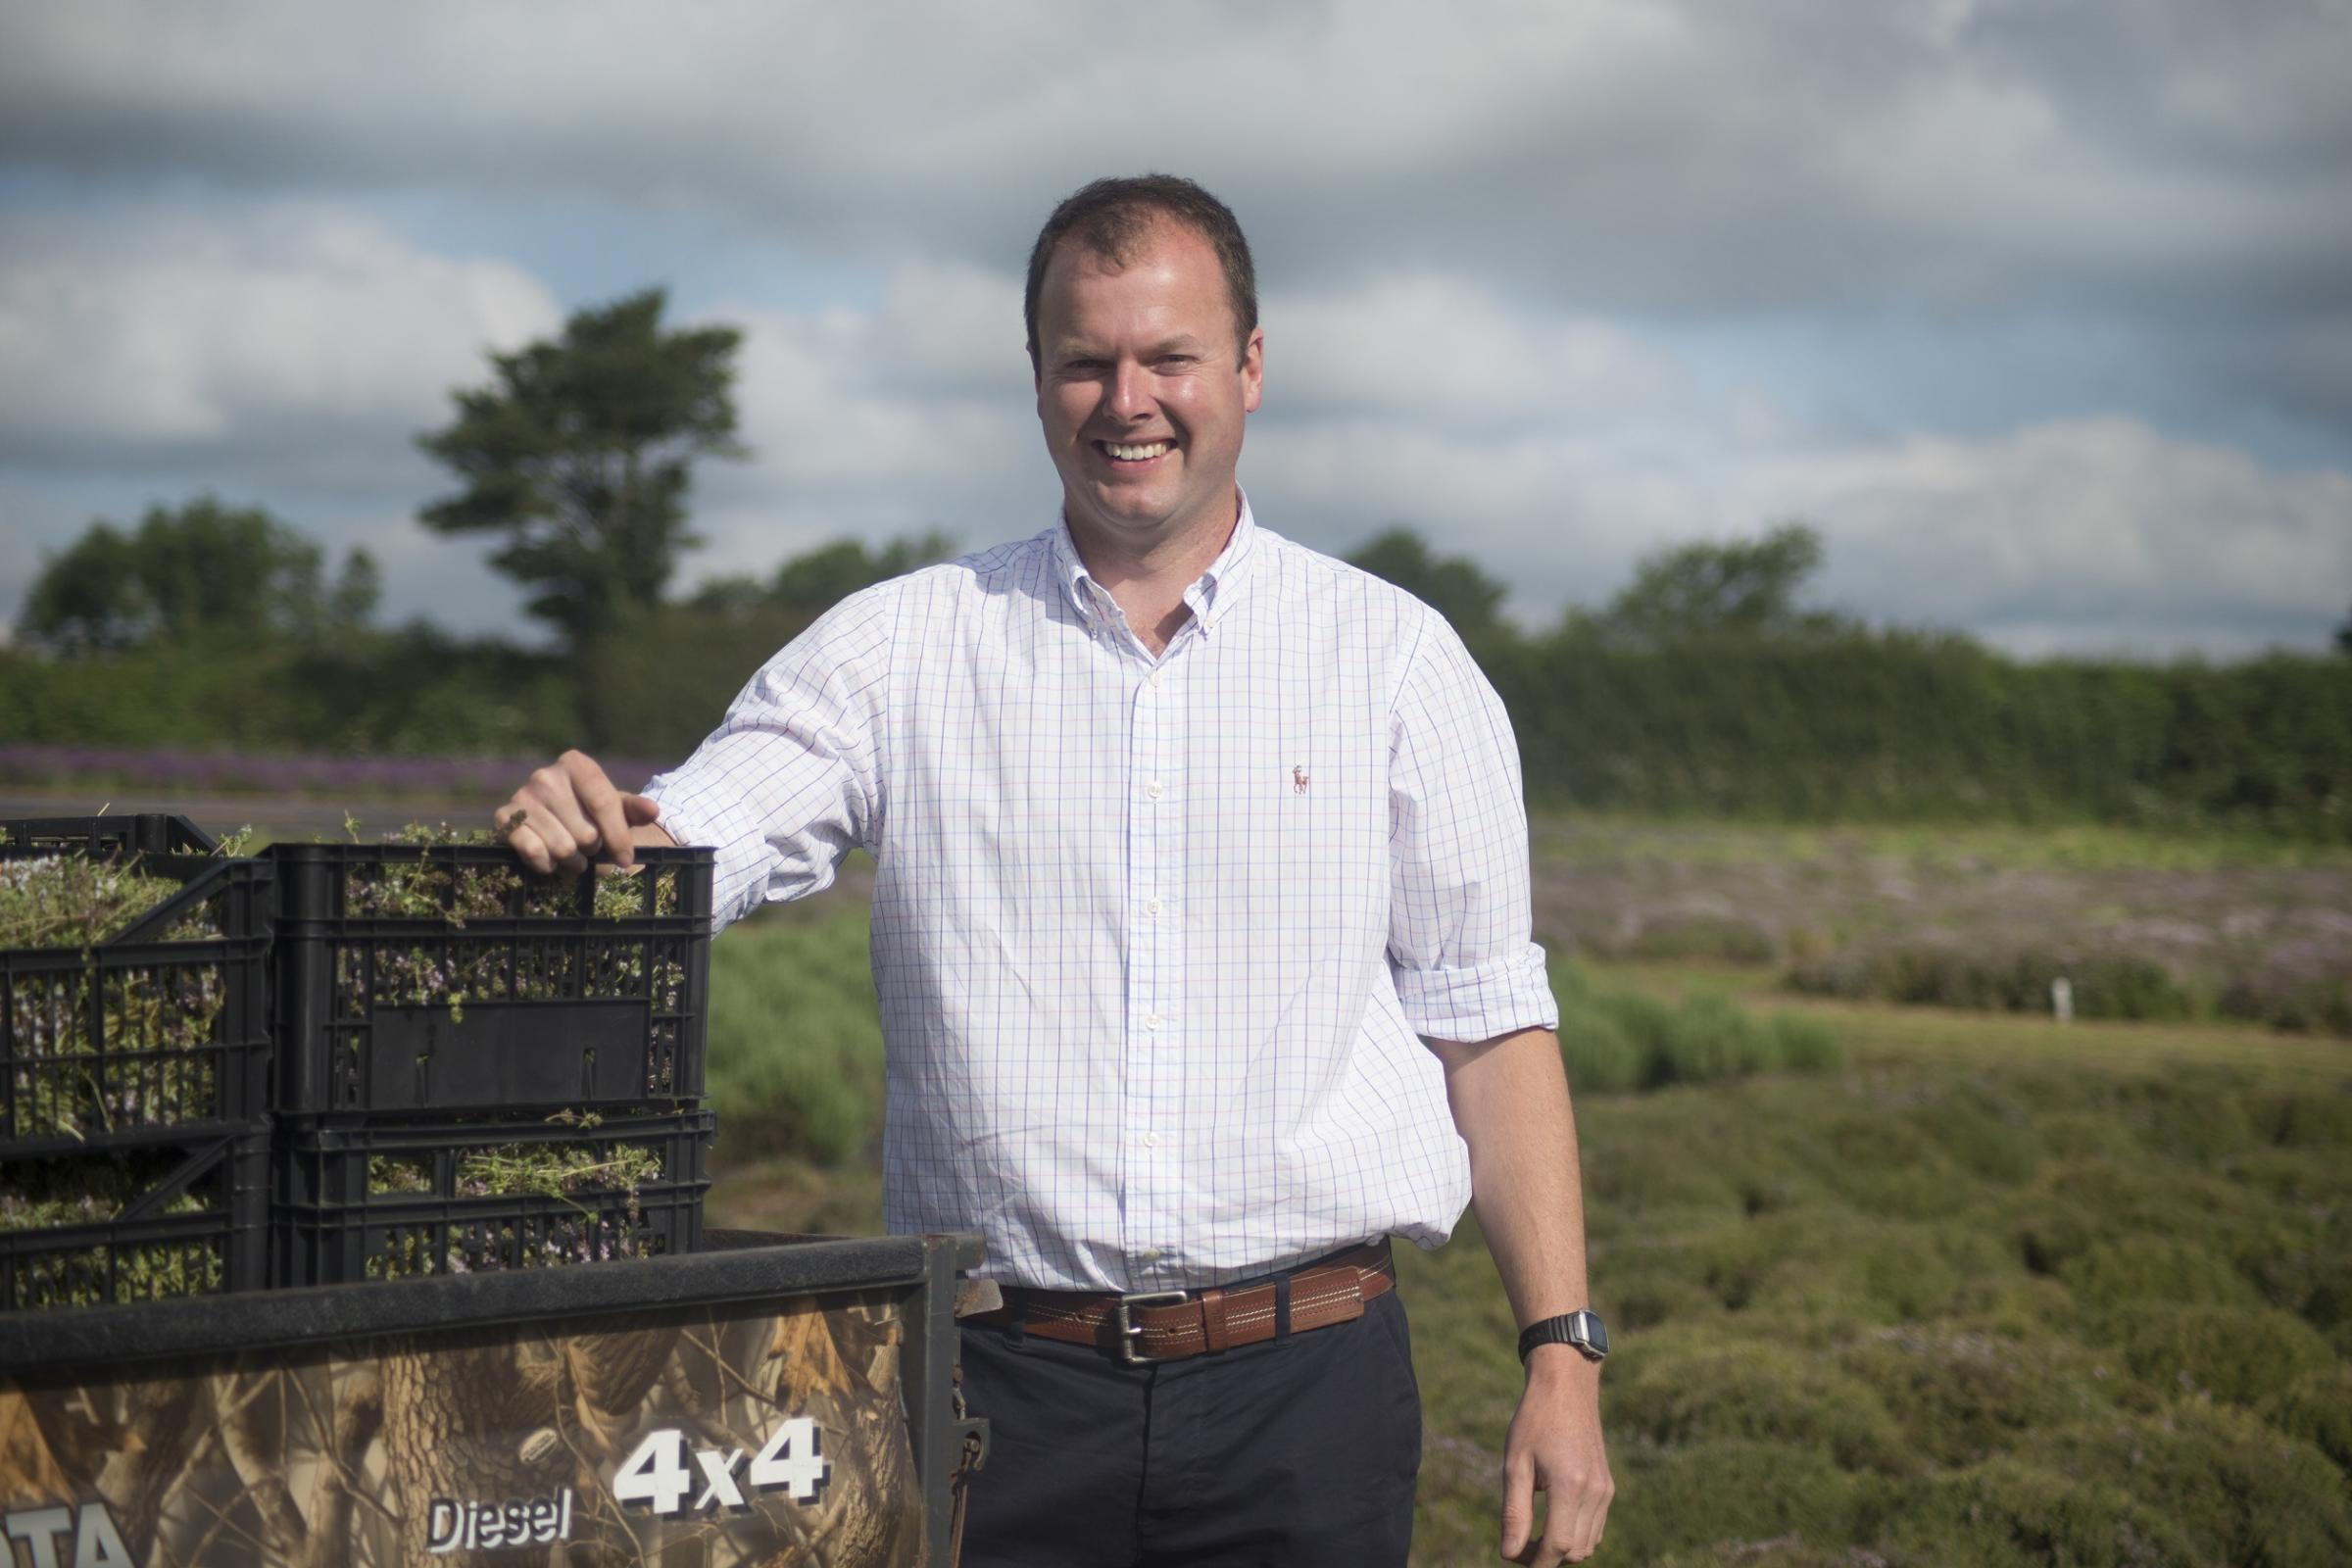 Philip Dodd managing director of Herbs Unlimited